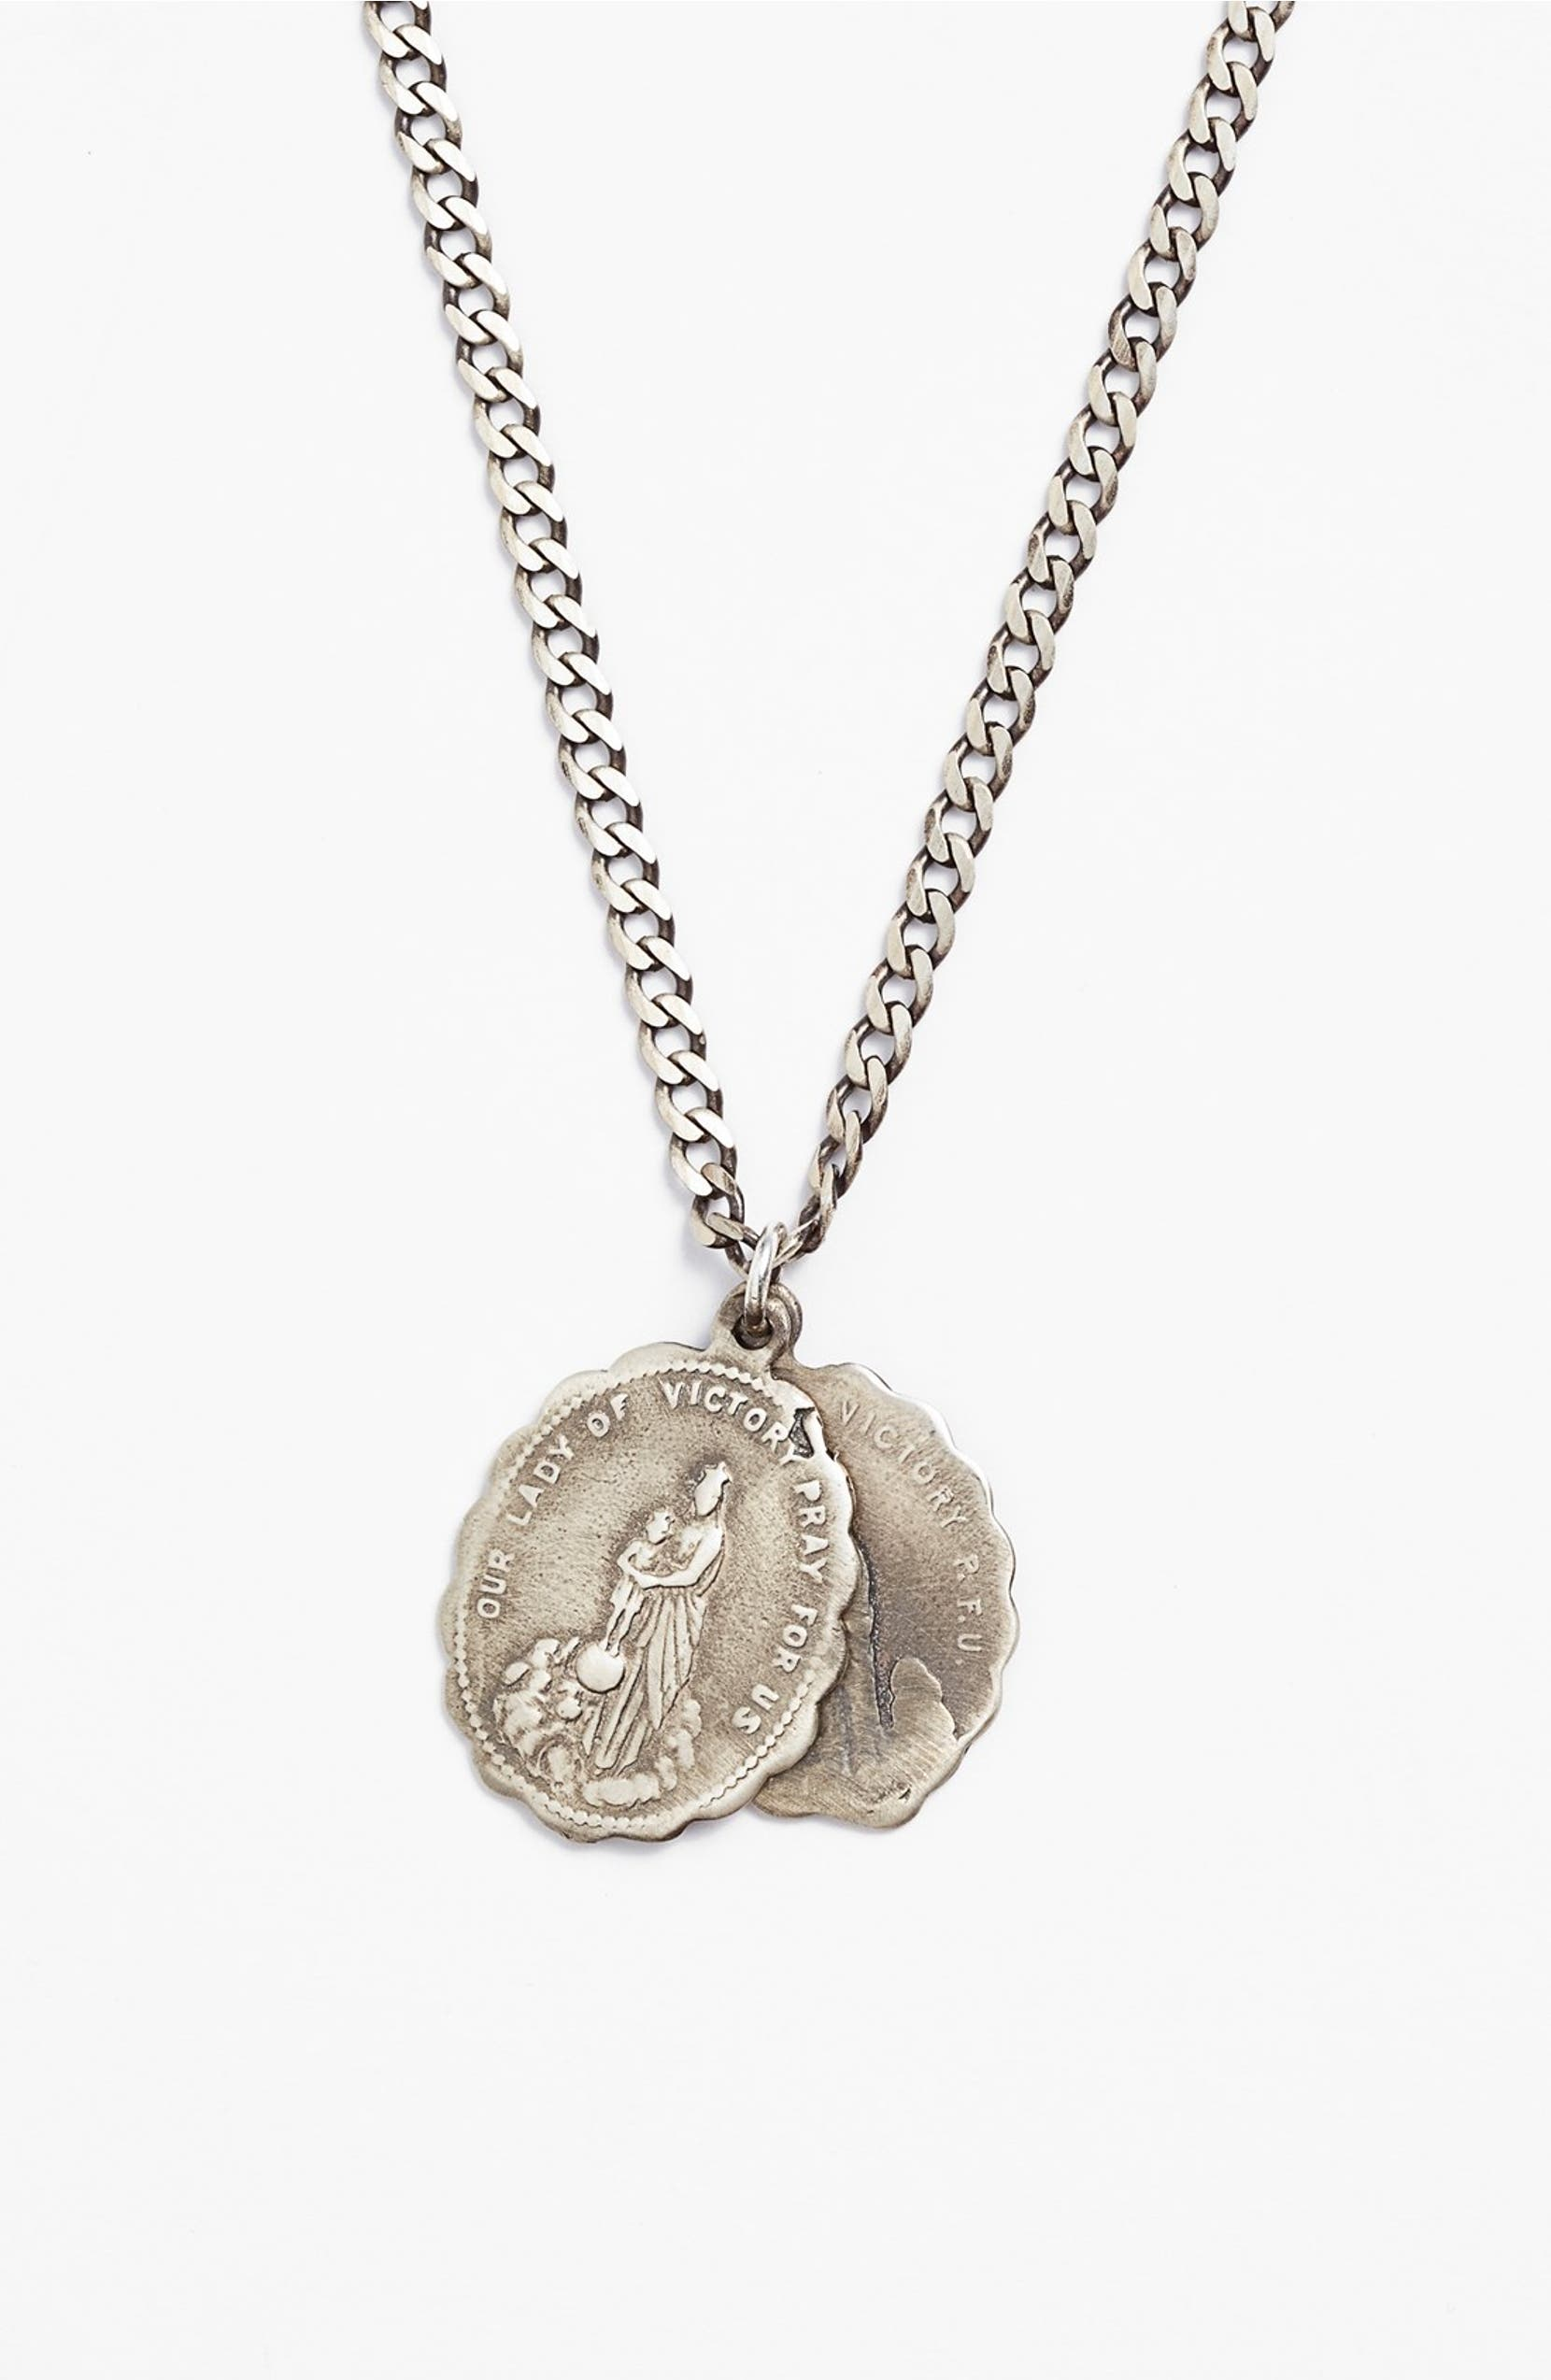 wearable saint medallion hero my silver benedictine necklace saints s